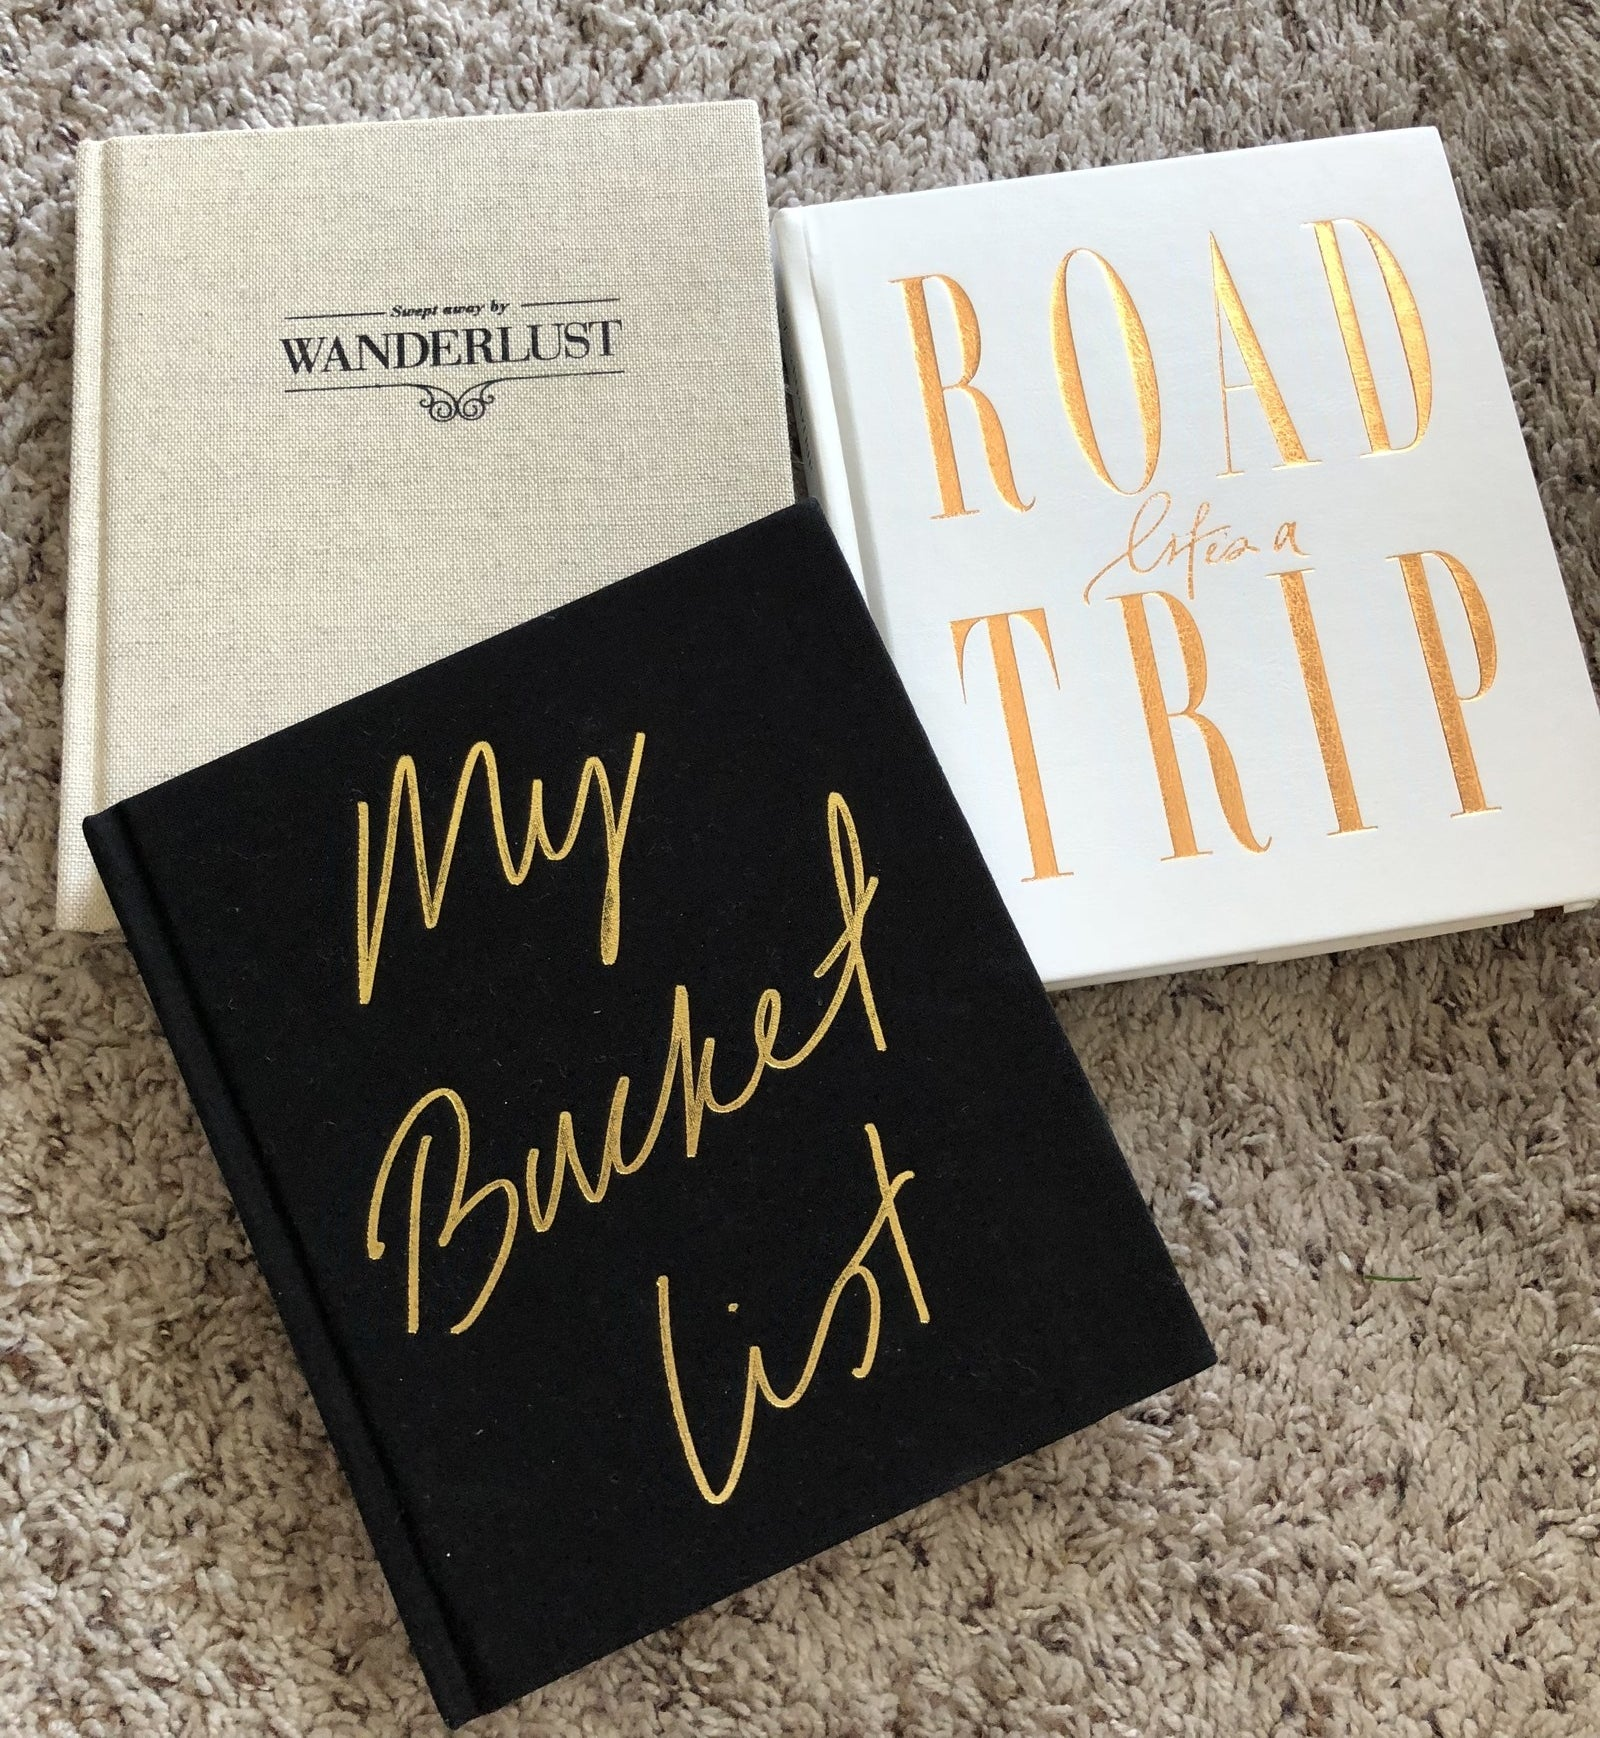 7 Pictures That Will Make You Want To Book A Trip: You'll Want To Pack These Travel Journals On Every Single